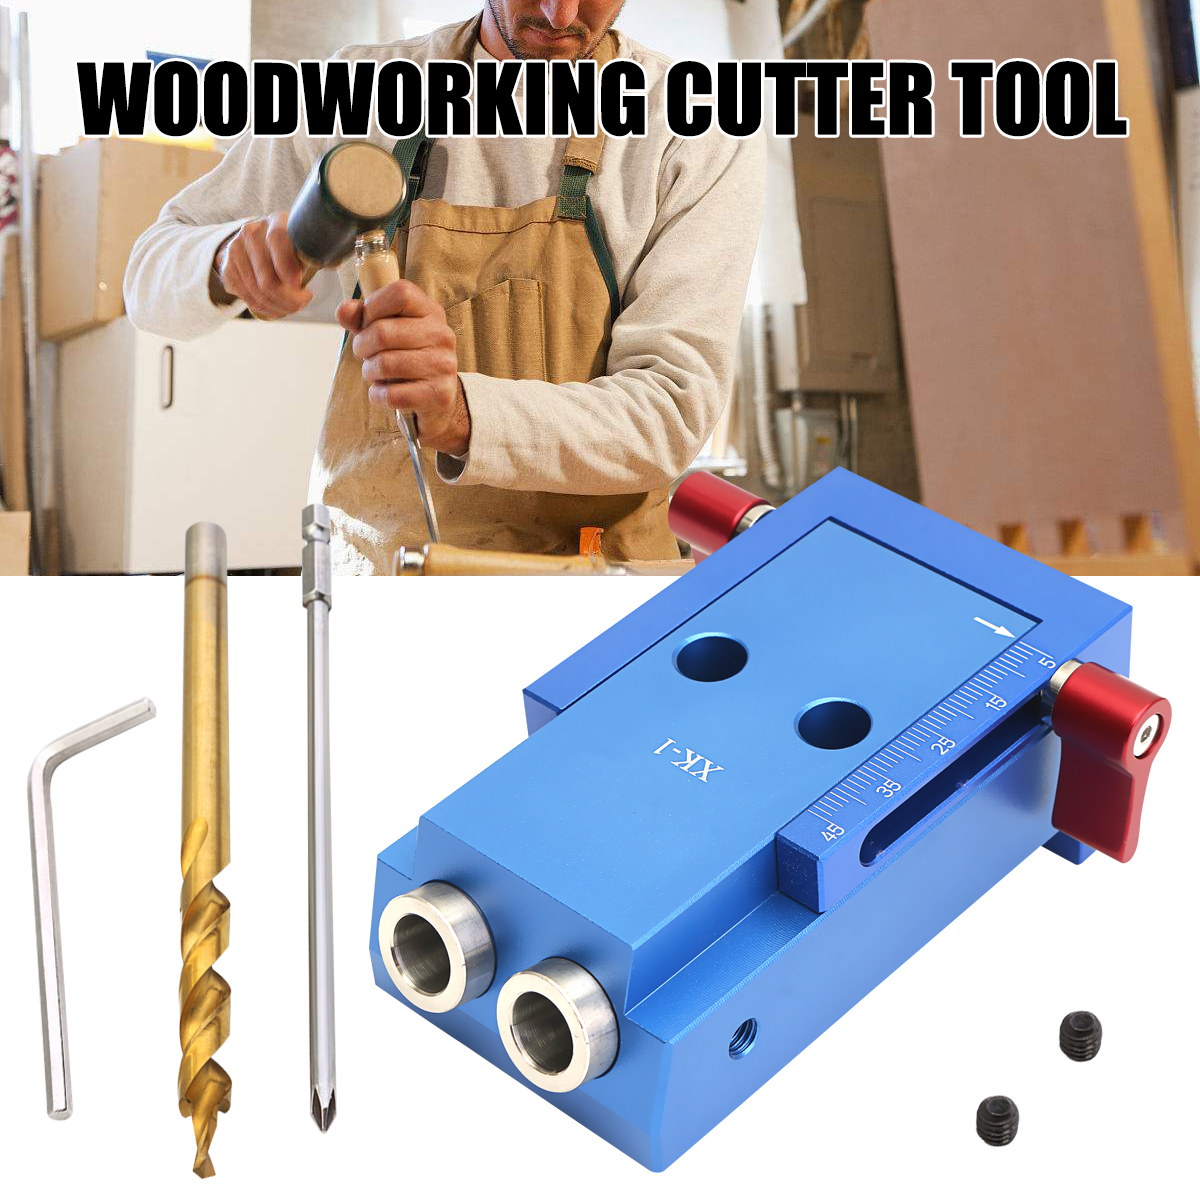 Aluminum Alloy Pocke t Hole Jig Kit With Step Drill Bit Woodworking Cutter Tool 9.5mm Collar Manual Wood Drilling Hole Saw все цены